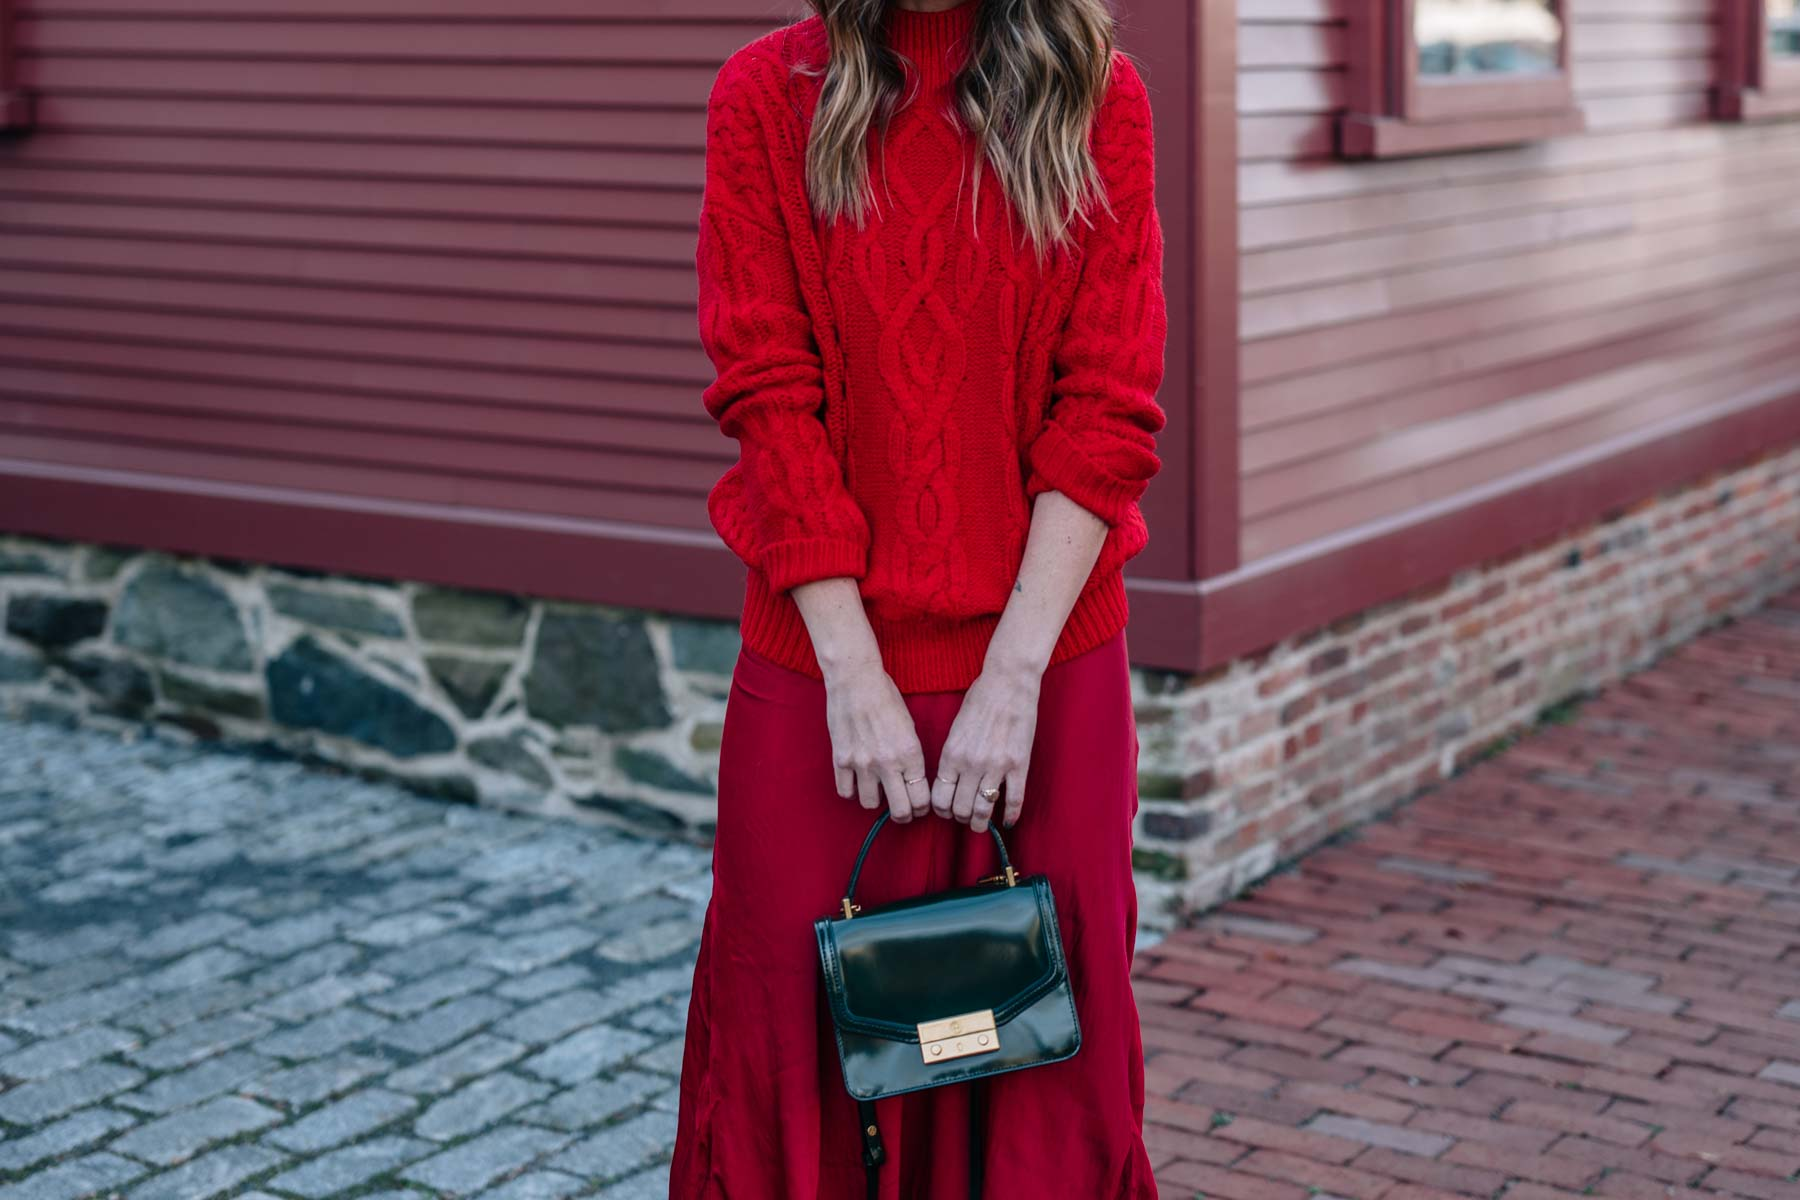 Jess Ann Kirby shares how to wear red on red this holiday season with sparkle ankle boots and the tory burch mini Juliette bag